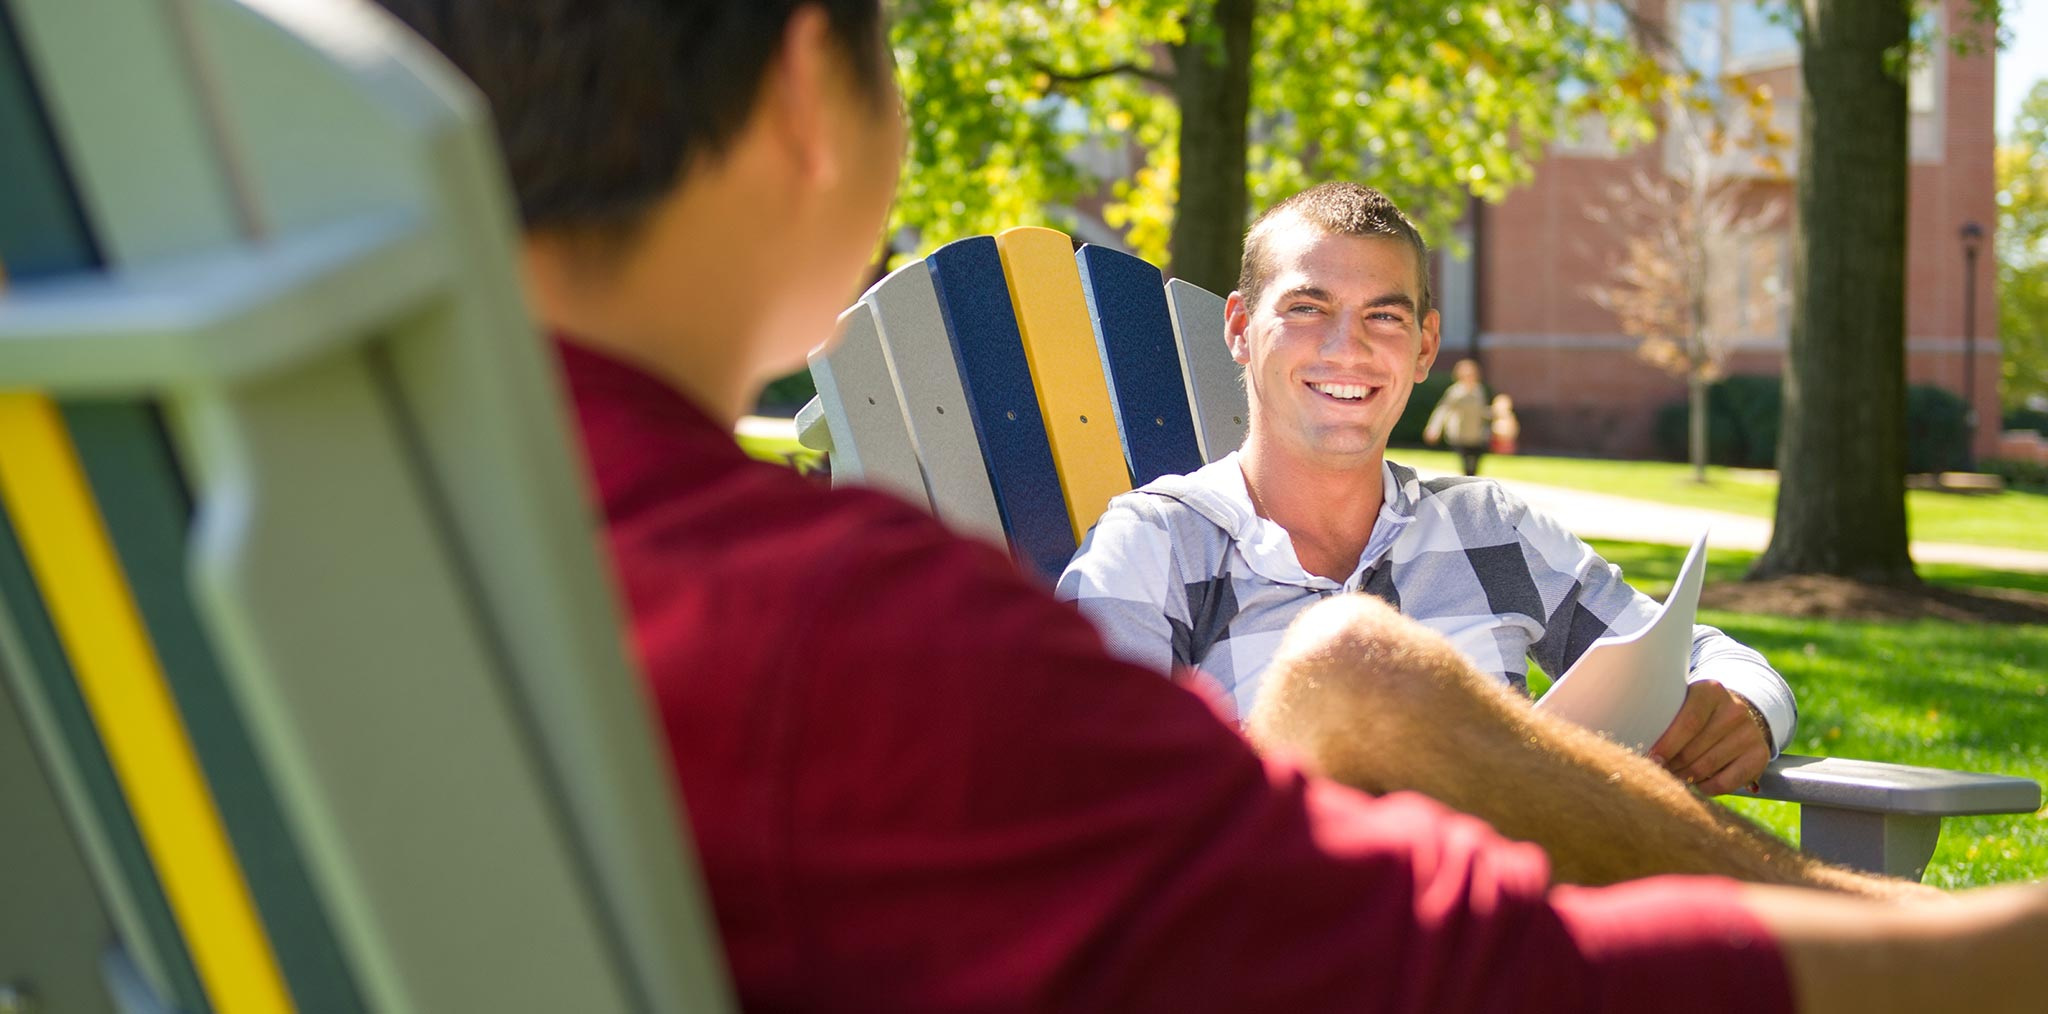 Students studying in Adirondack chairs